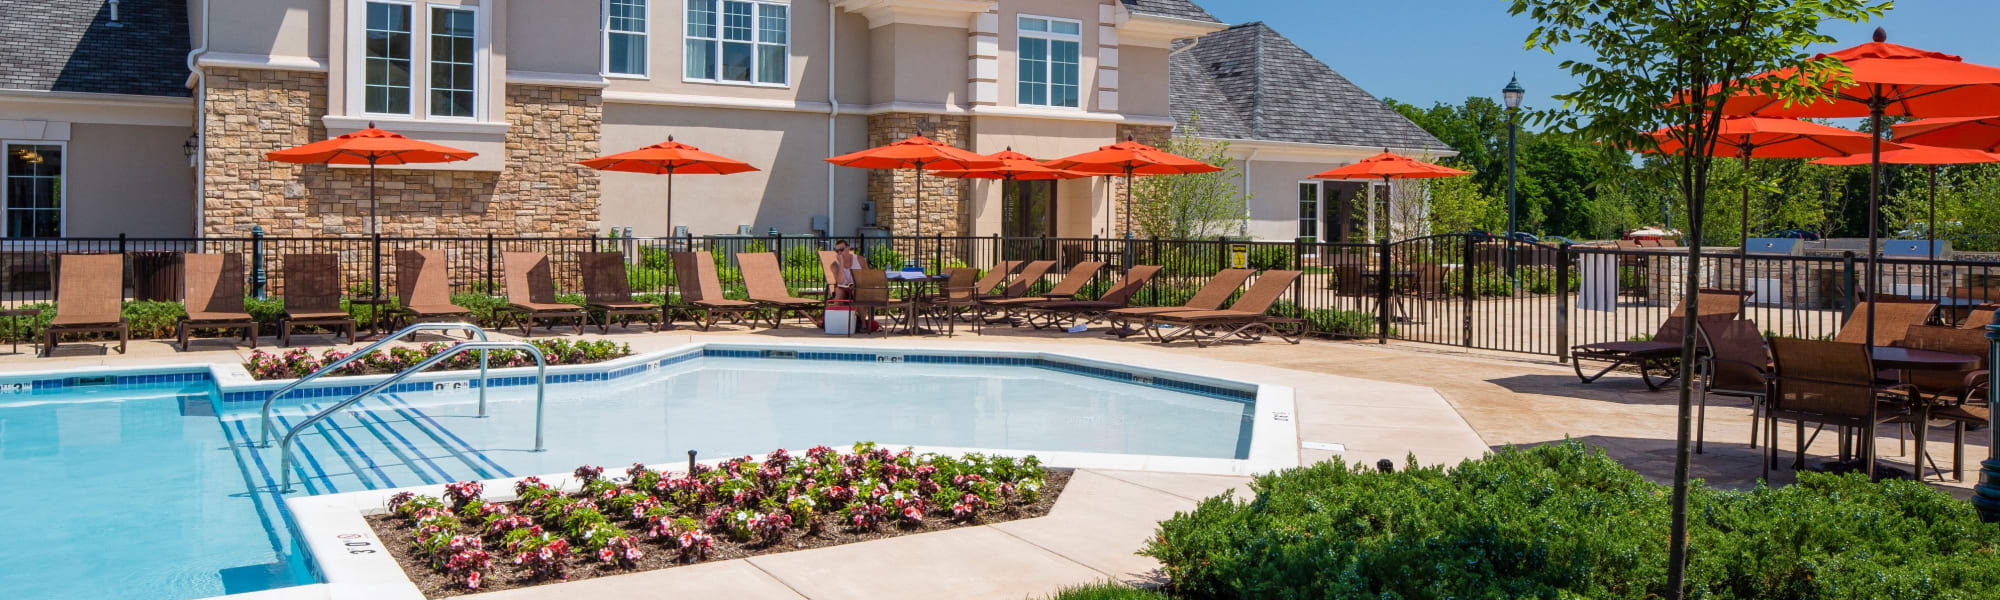 Amenities at The Grove Somerset in Somerset, New Jersey